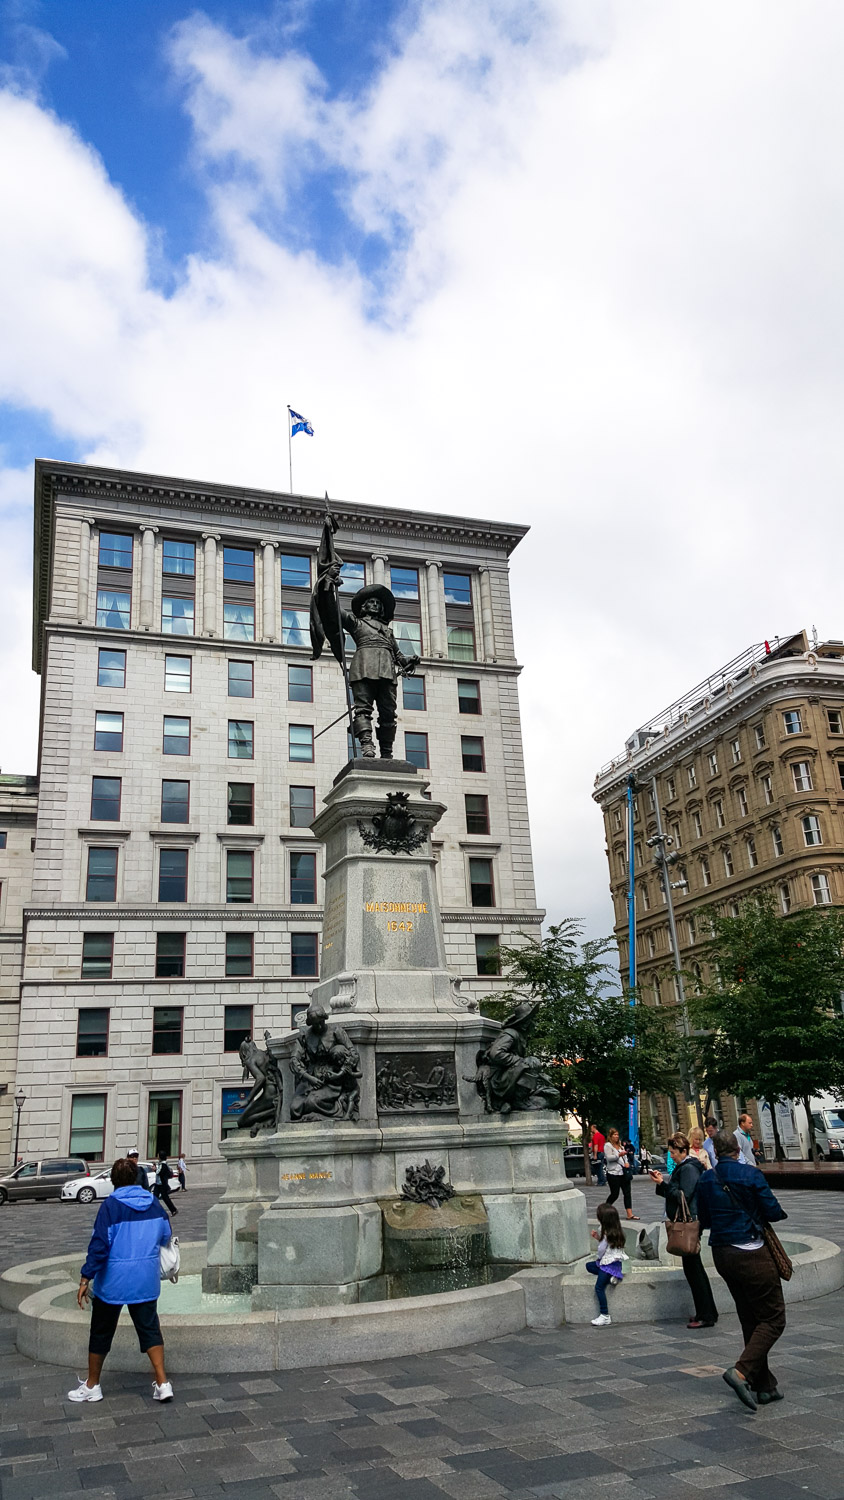 Place d'Armes with the monument honoring Paul de Chomedey, Sieur de Maisonneuve who was a French military officer and founder of Montreal.